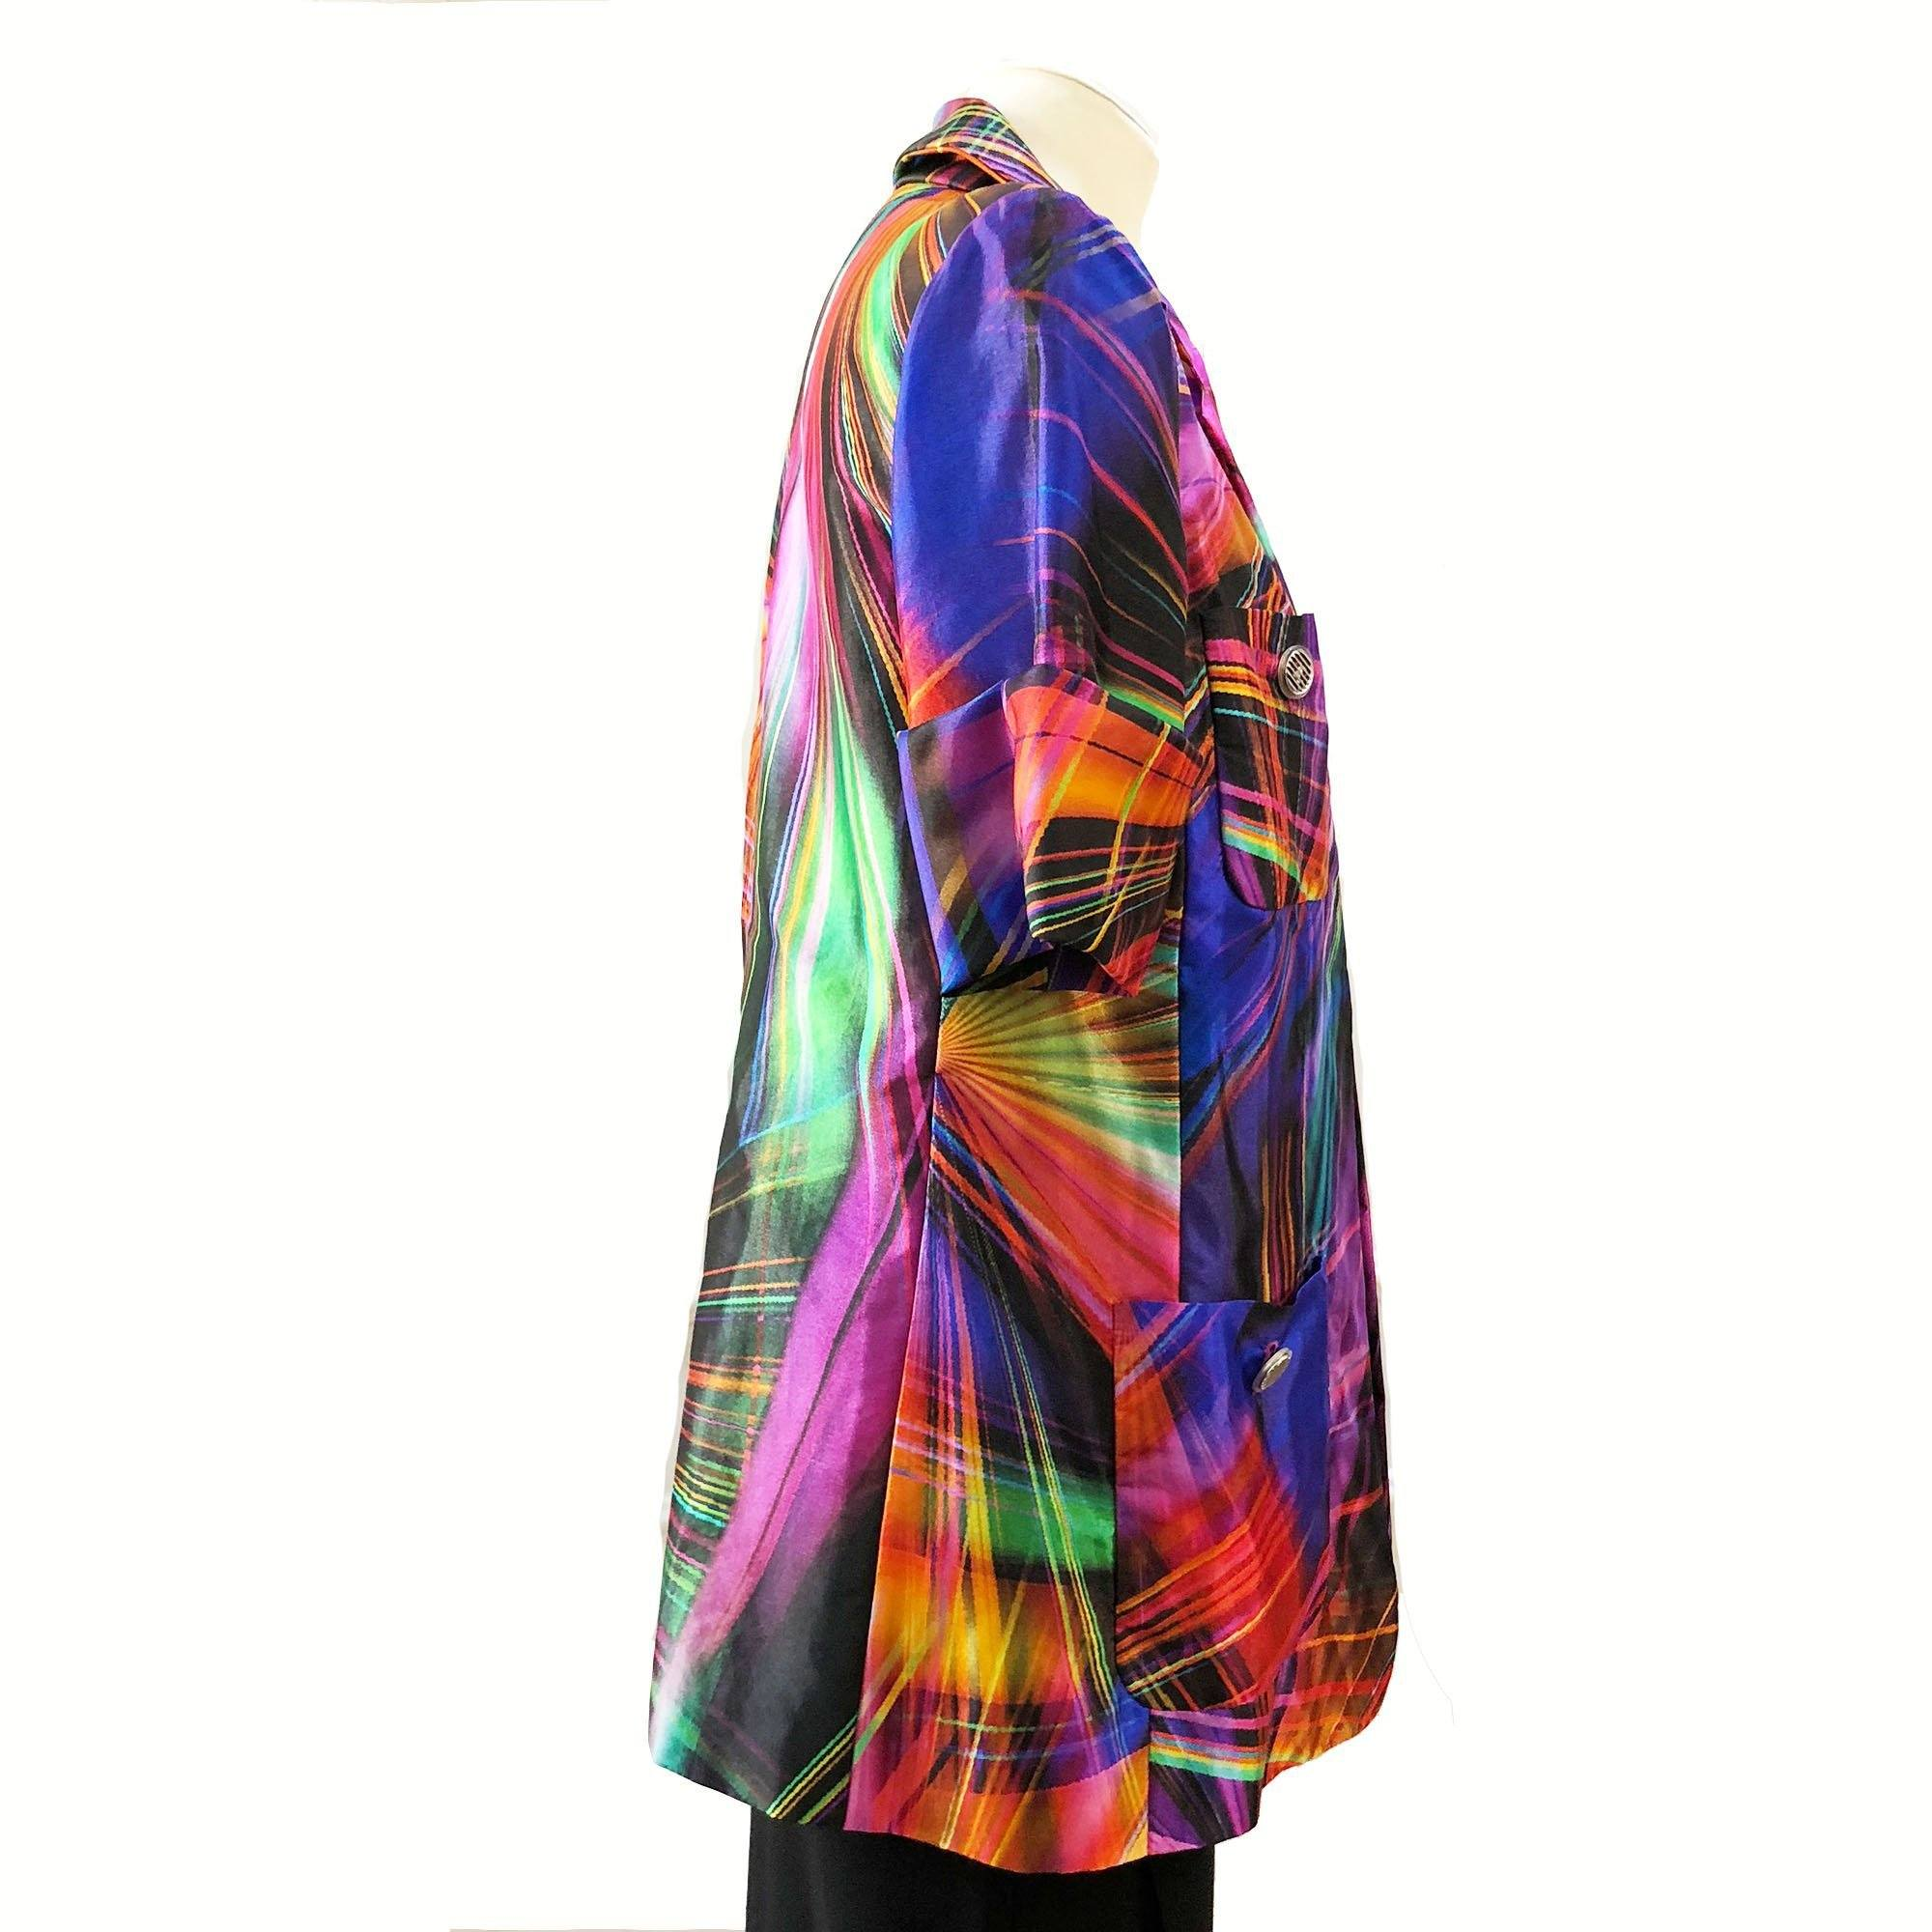 Chanel Geometric Printed Multicolor Silk Jacket